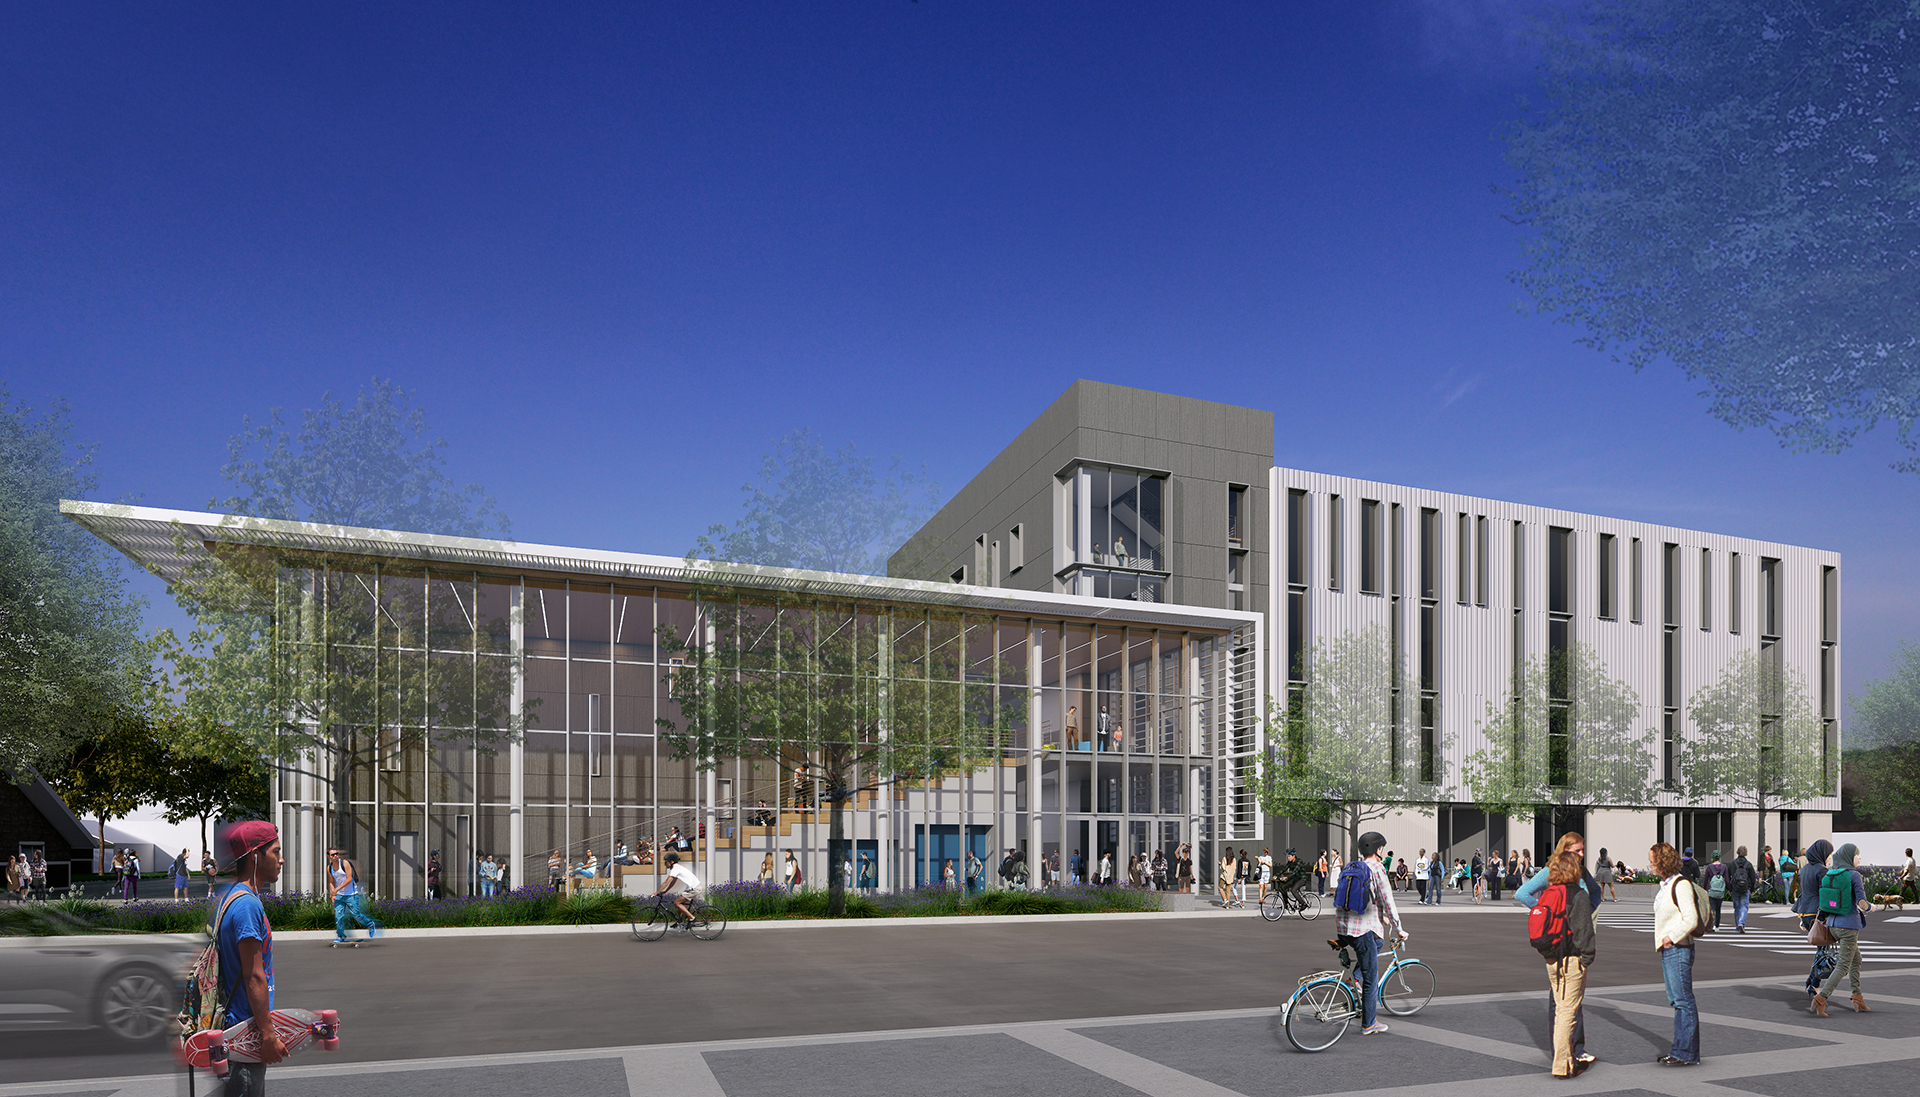 Rendering of exterior building with large glass atrium